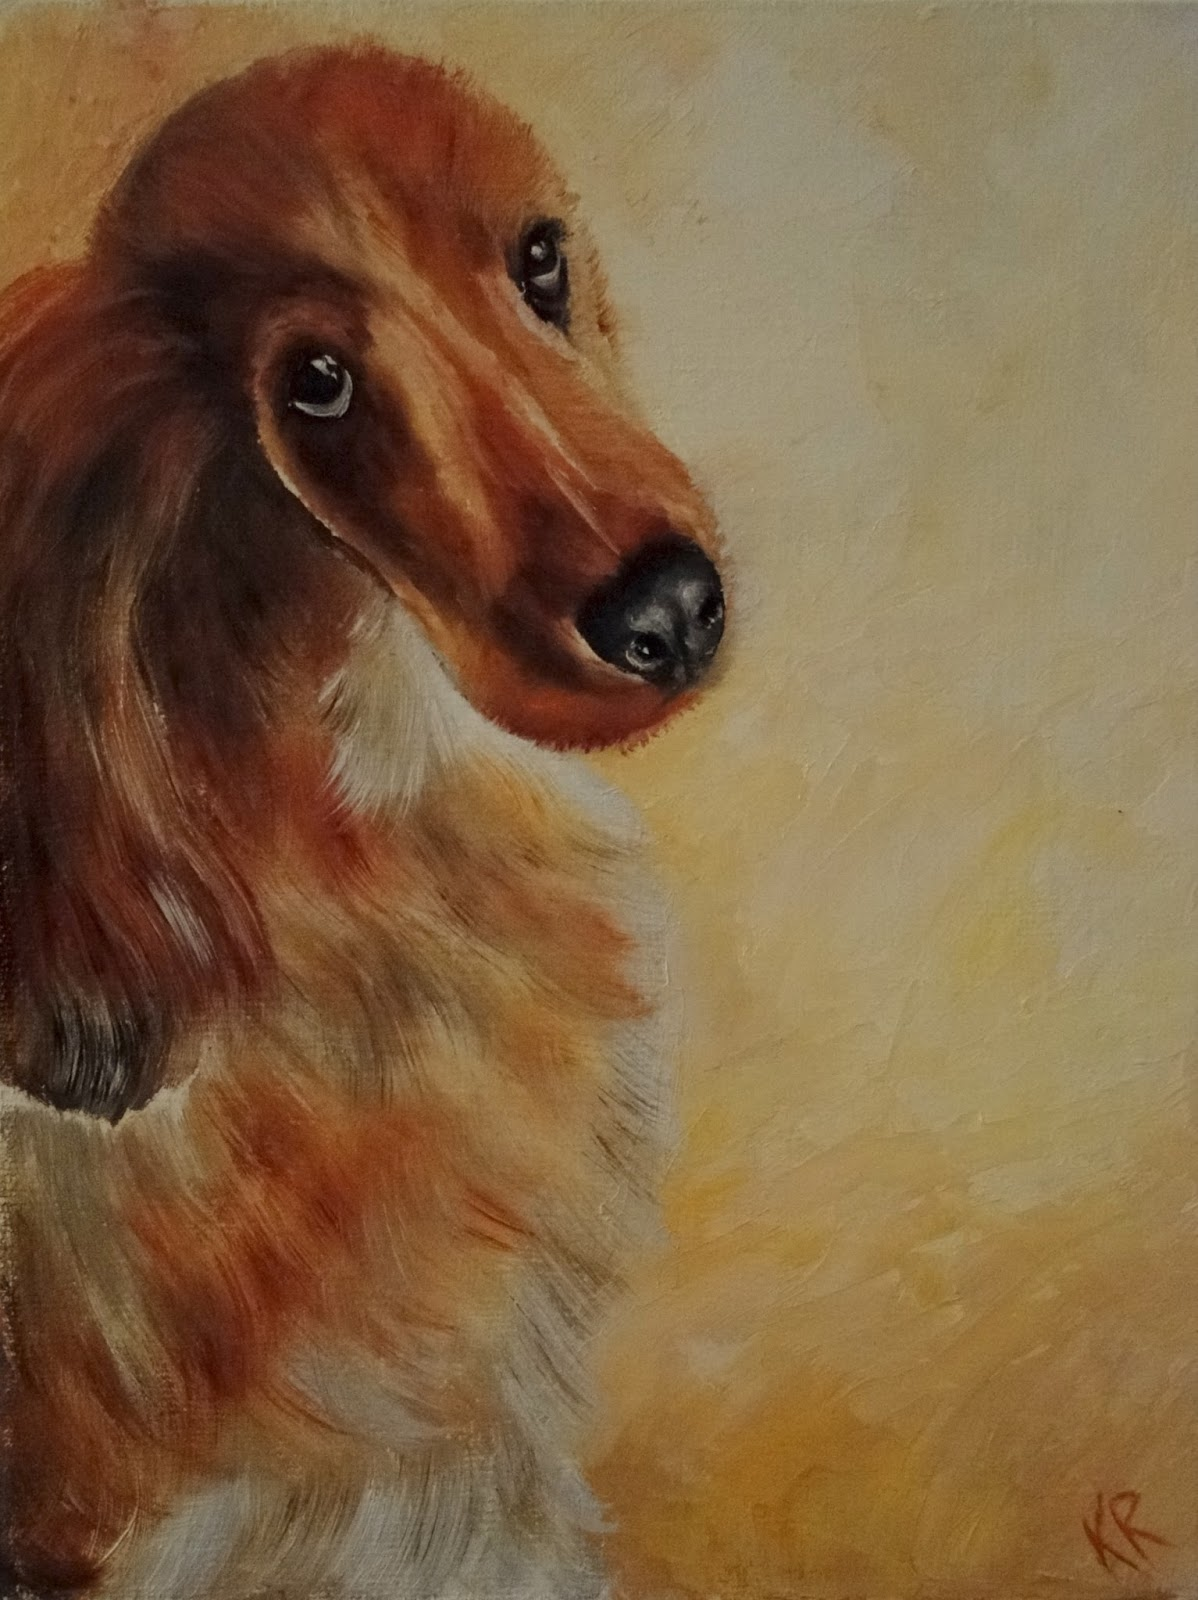 oil painting of a golden spaniel with beseeching eyes. A pet portrait by Karen